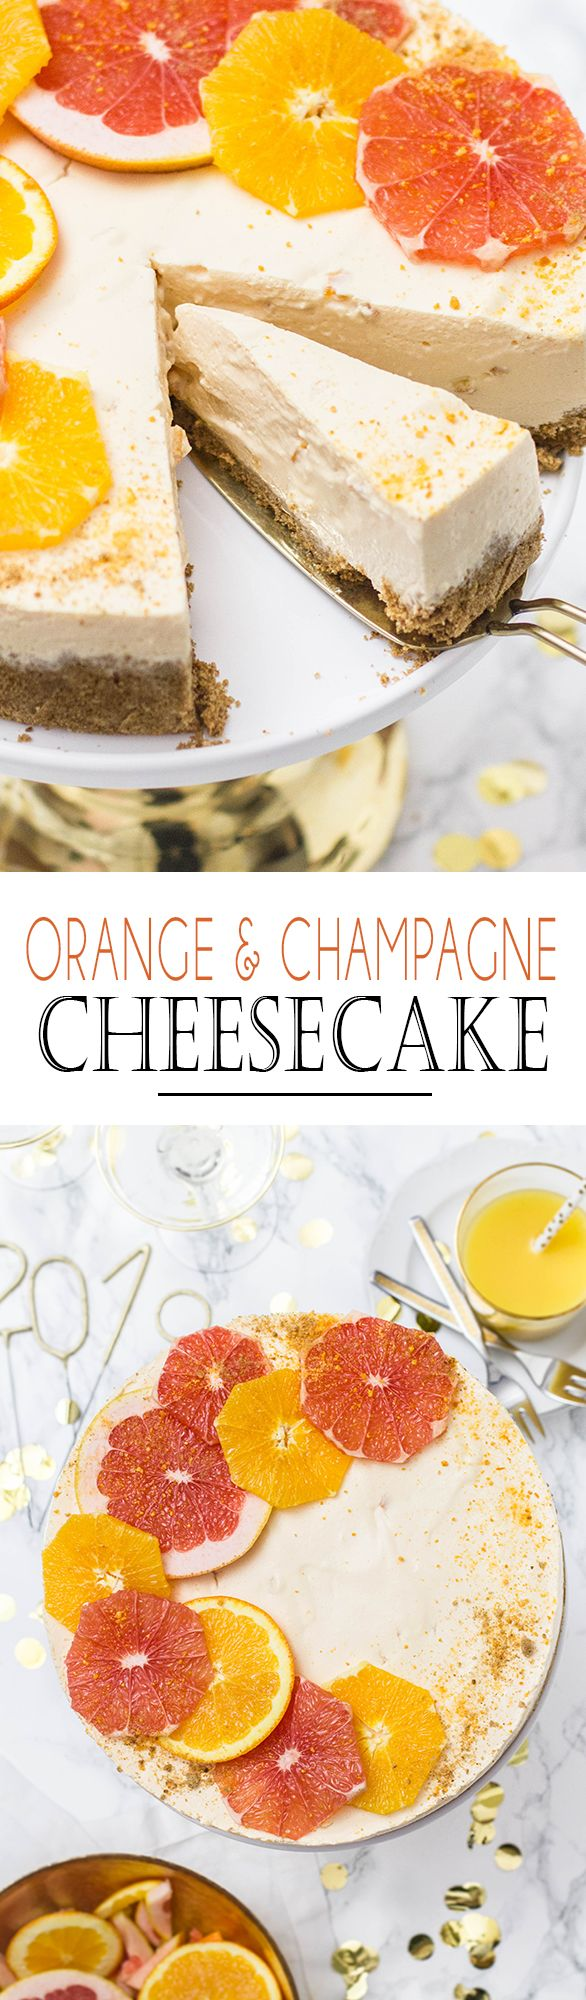 Orange Juice and Champagne No Bake Cheesecake. Perfect recipe for new years eve || Orangensaft und Sekt No Bake Cheesecake. Perfektes Rezept für Silvester #newyearsevefood